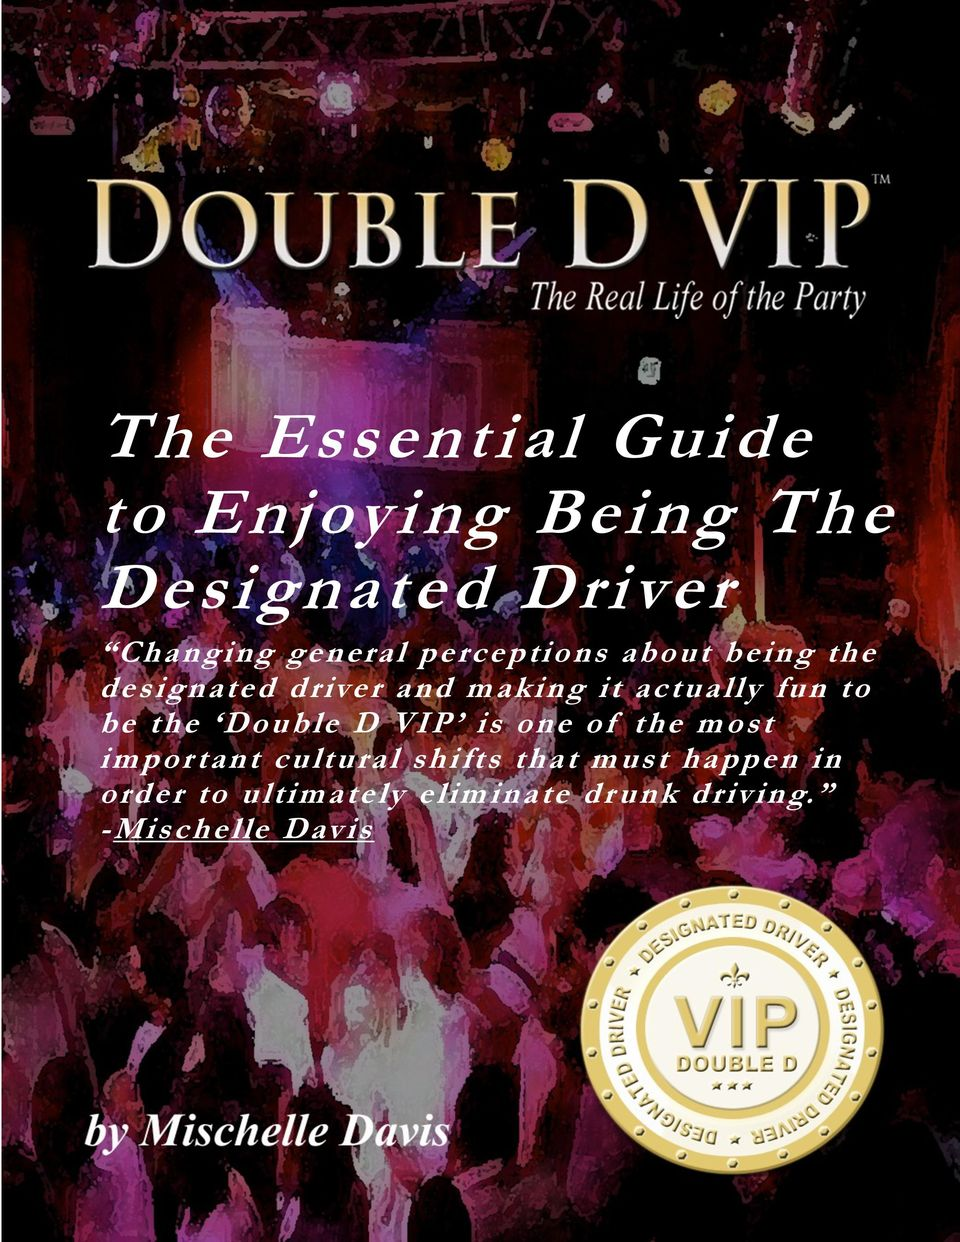 actually fun to be the Double D VIP is one of the most impor tant cultural